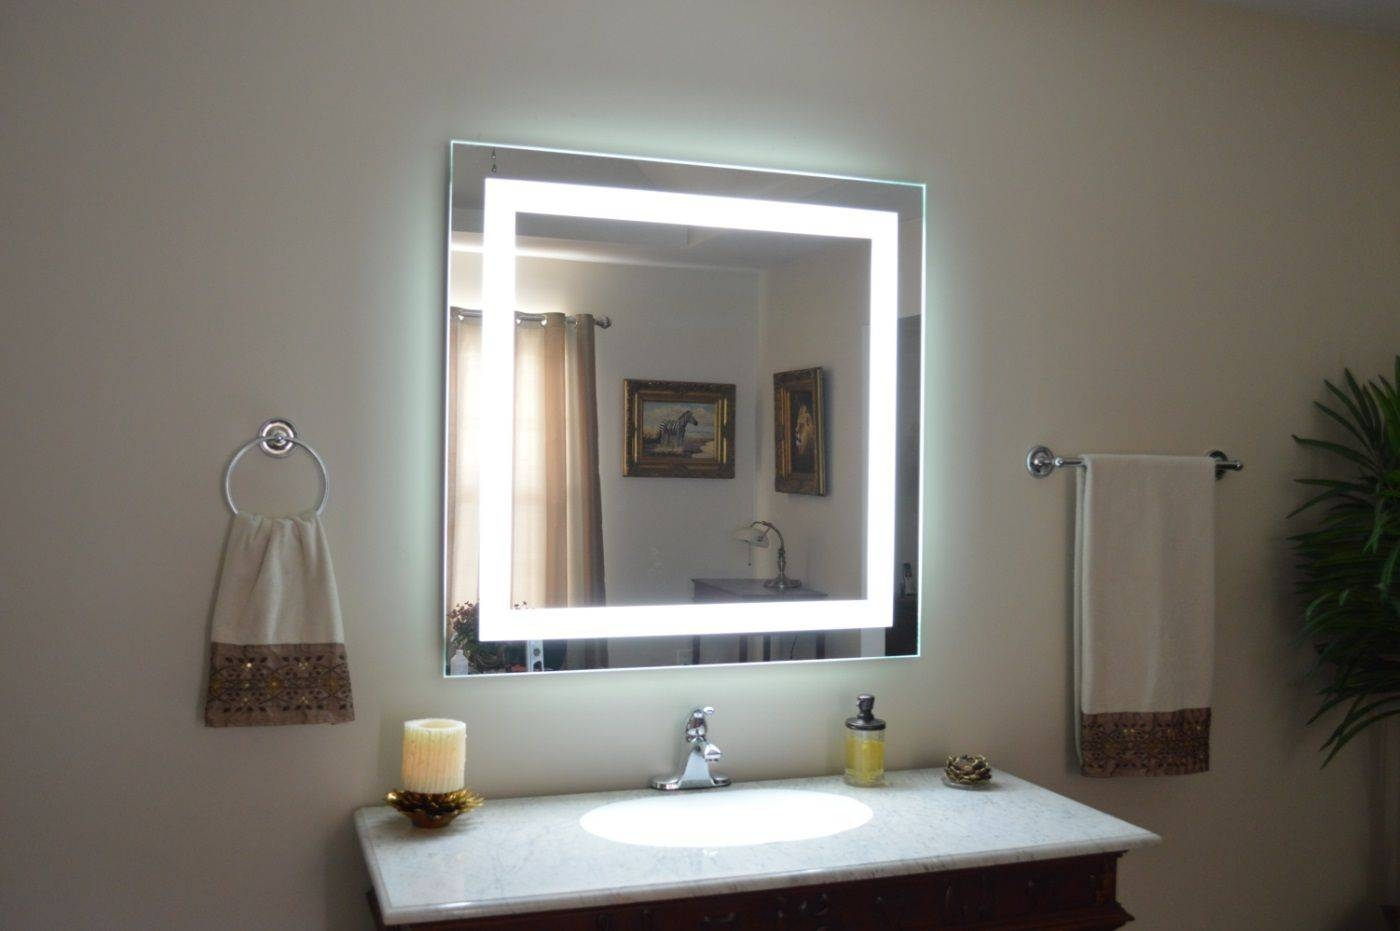 Top 10 Wall Lighted Makeup Mirror 2017 | Warisan Lighting with Wall Light Mirrors (Image 10 of 15)